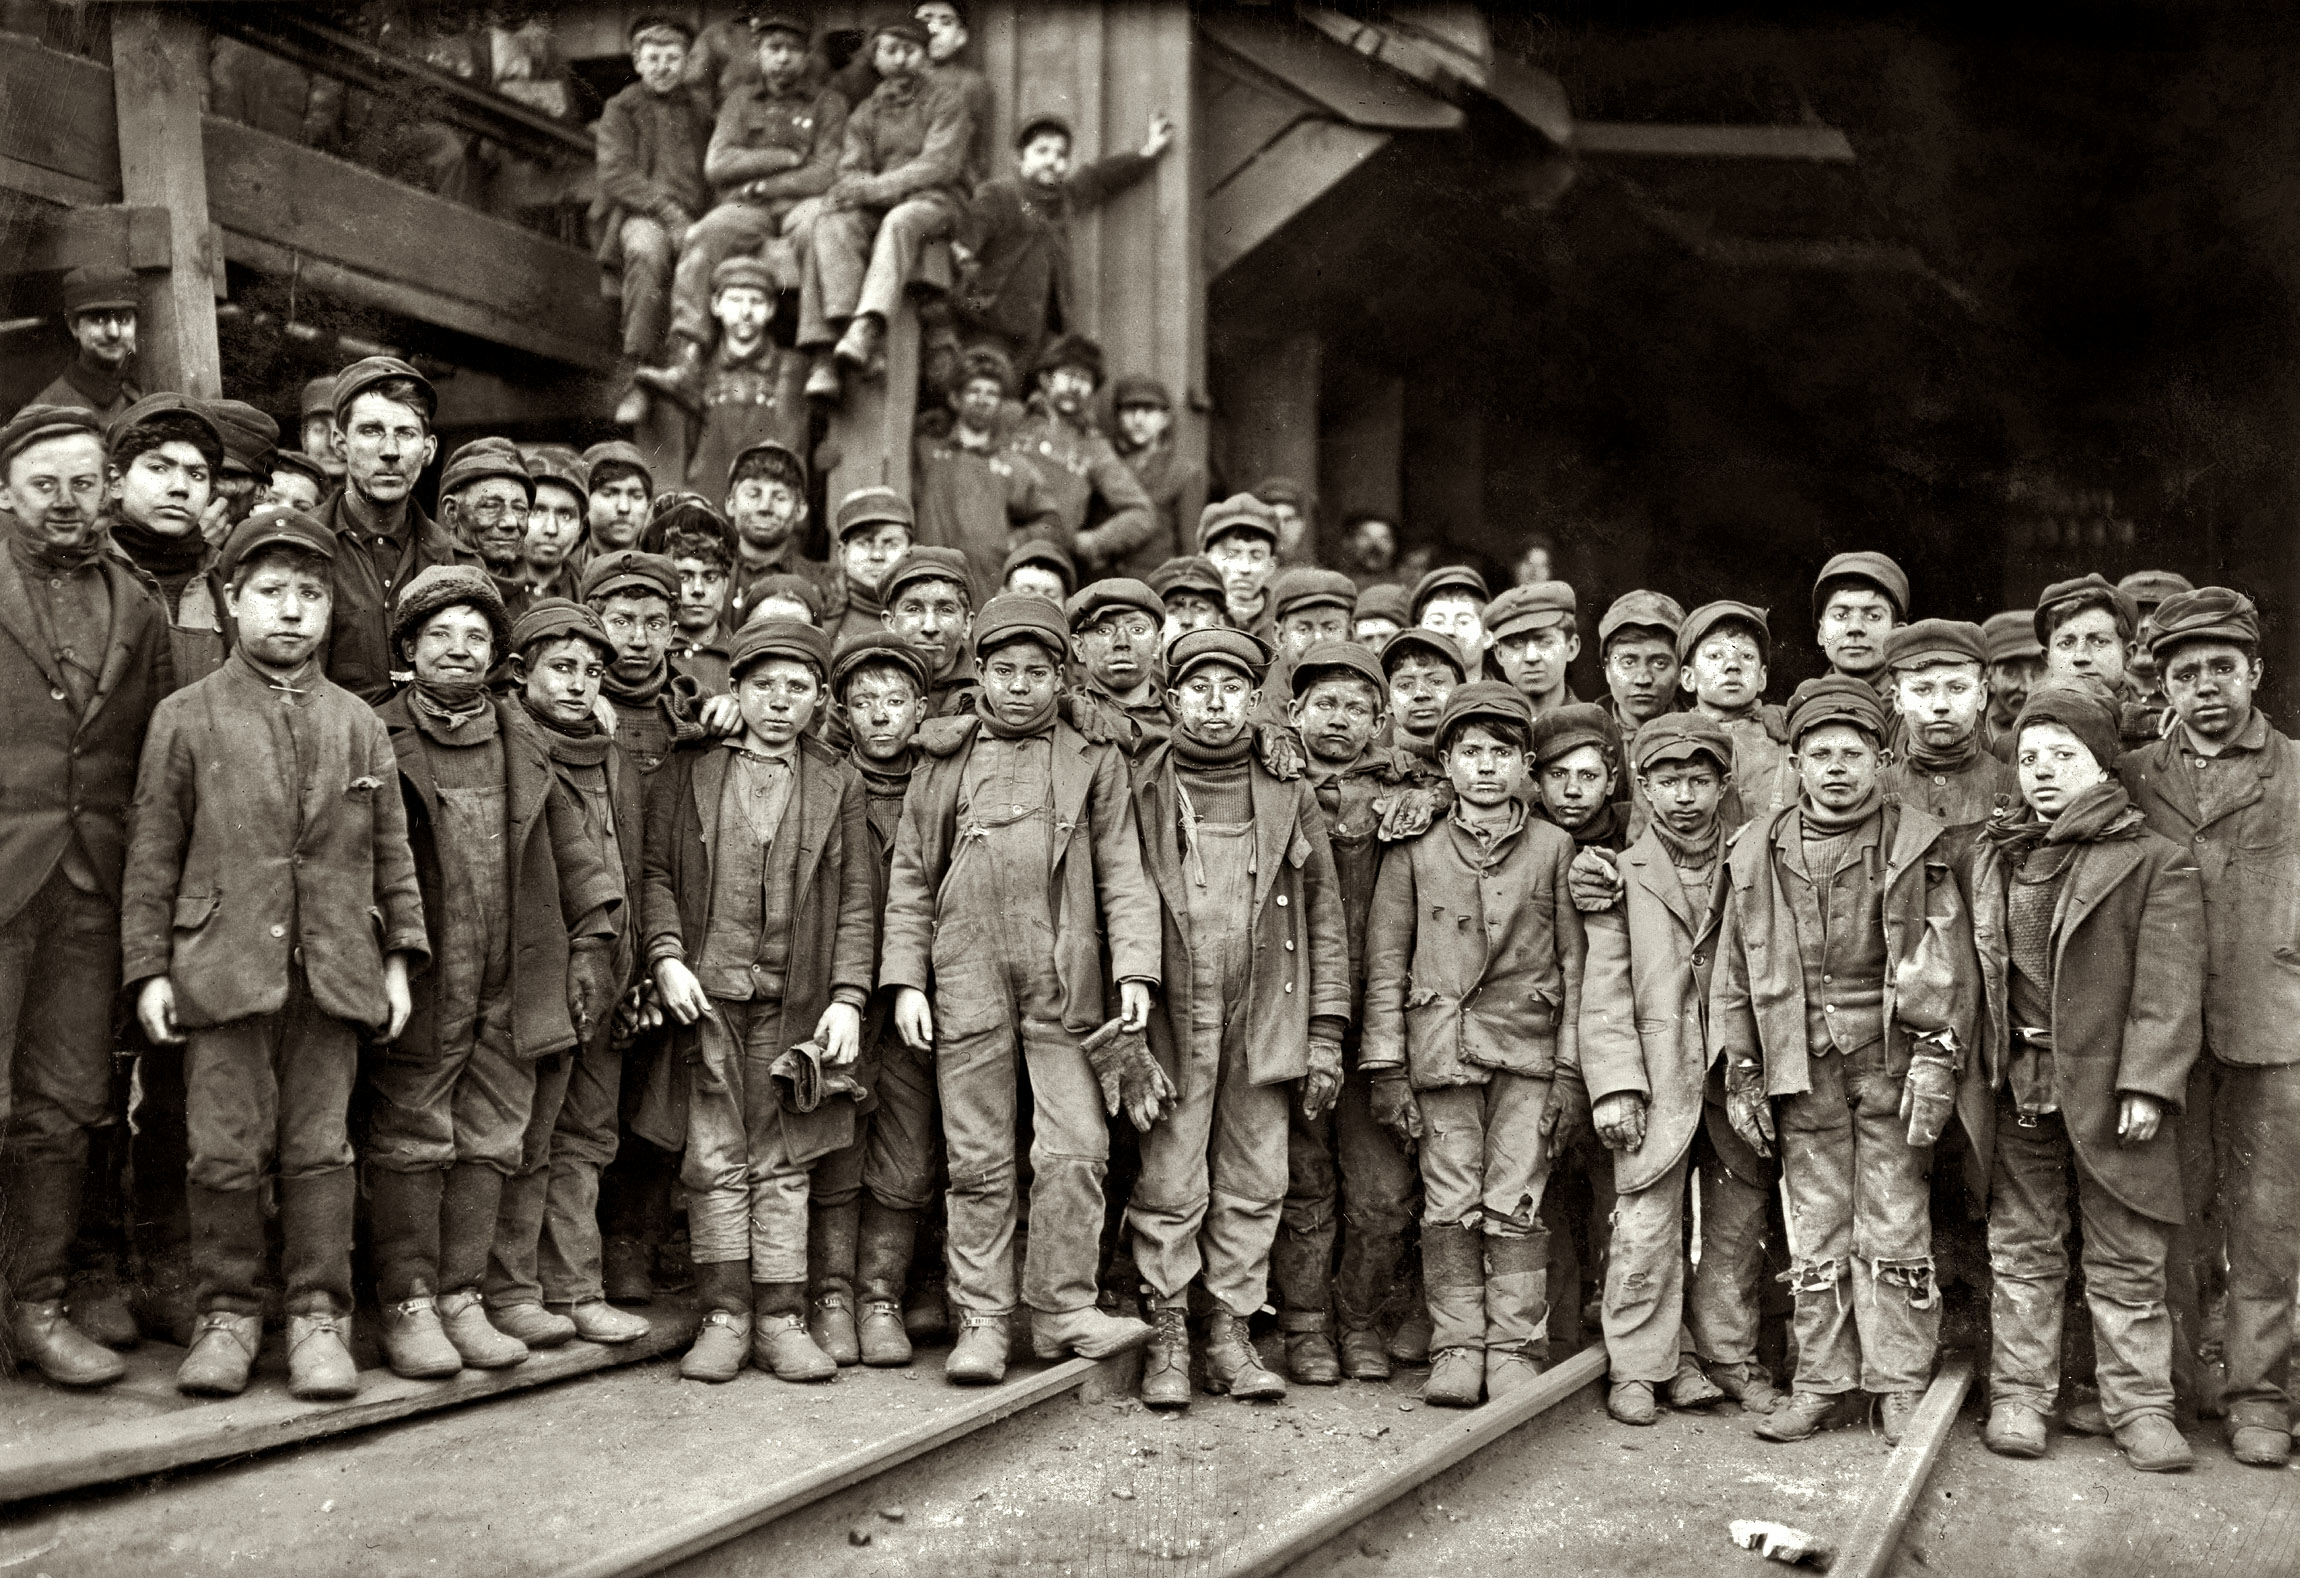 Young Mining Crew, Pennsylvania Coal Company, Photography by Lewis Wickes Hine, 1910 2300x1578